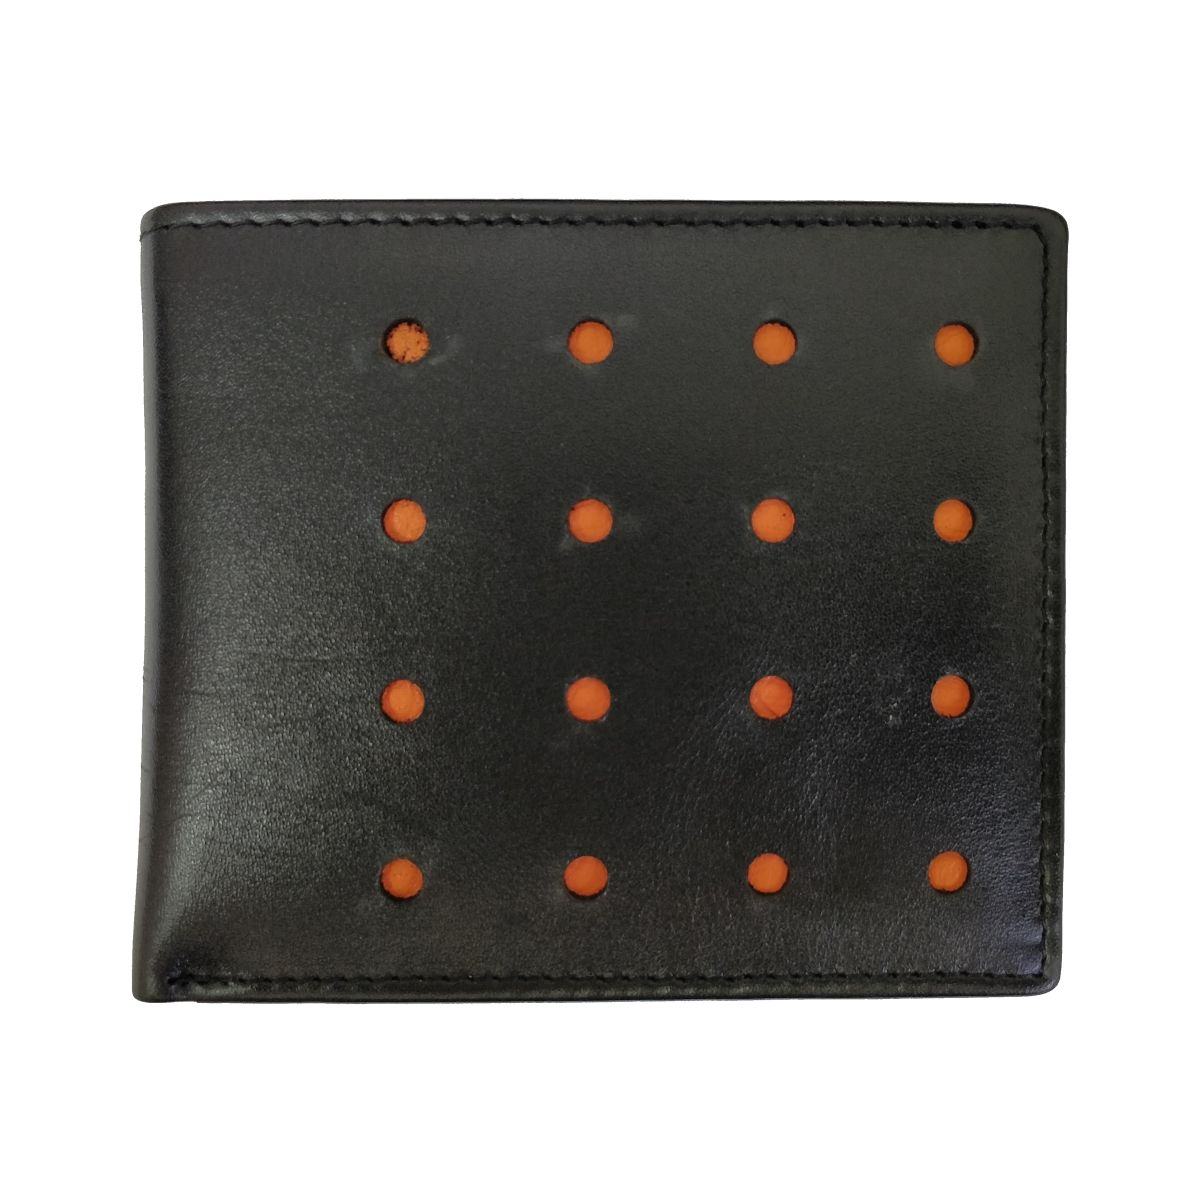 solo Leather Wallet Sixteen Holes With Coin Pouch - Black